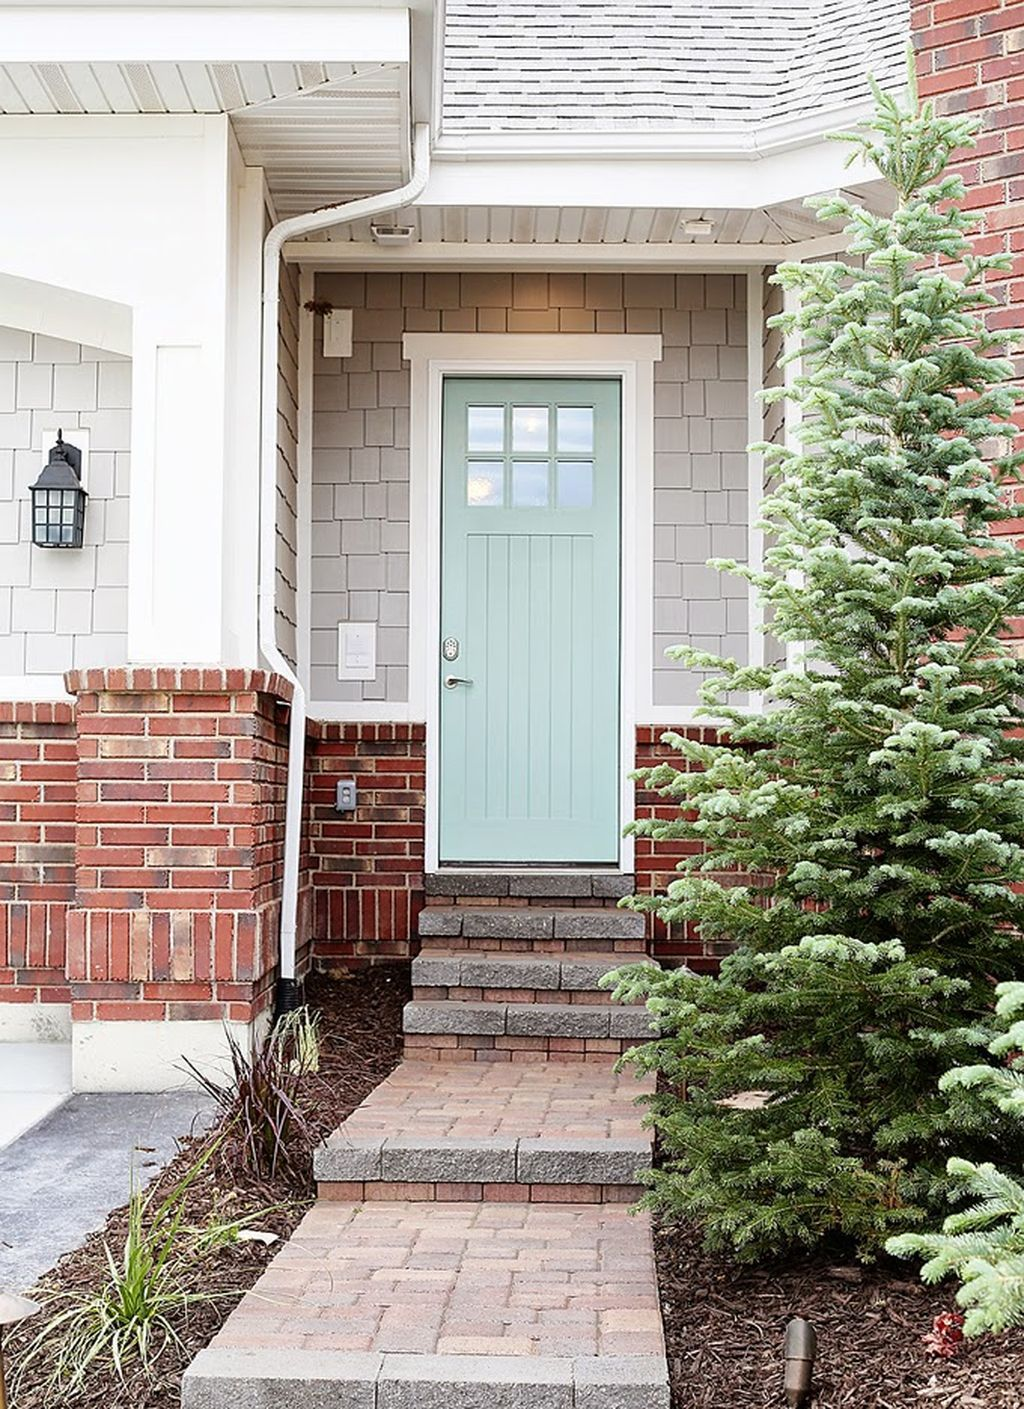 54 Exterior Paint Color Ideas With Red Brick   House paint ... on Brick House Painting Ideas  id=32946